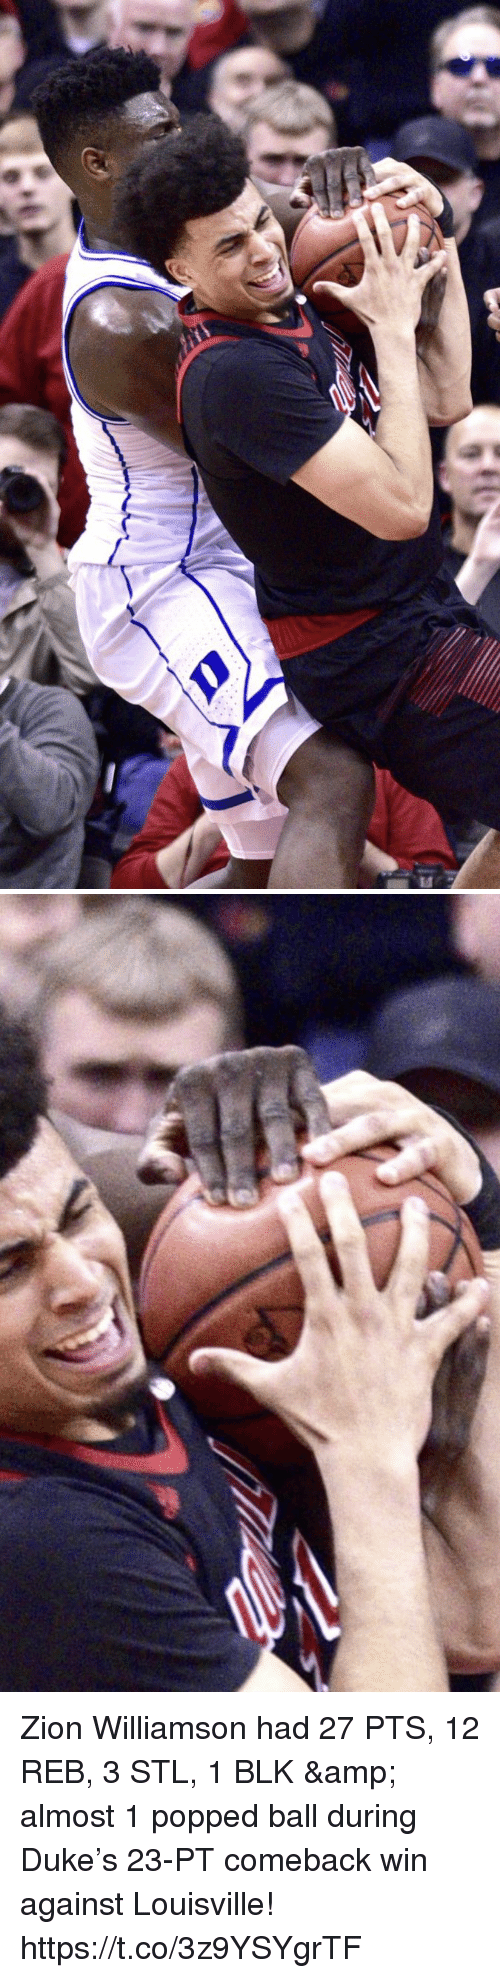 Memes, Duke, and 🤖: Zion Williamson had 27 PTS, 12 REB, 3 STL, 1 BLK & almost 1 popped ball during Duke's 23-PT comeback win against Louisville! https://t.co/3z9YSYgrTF